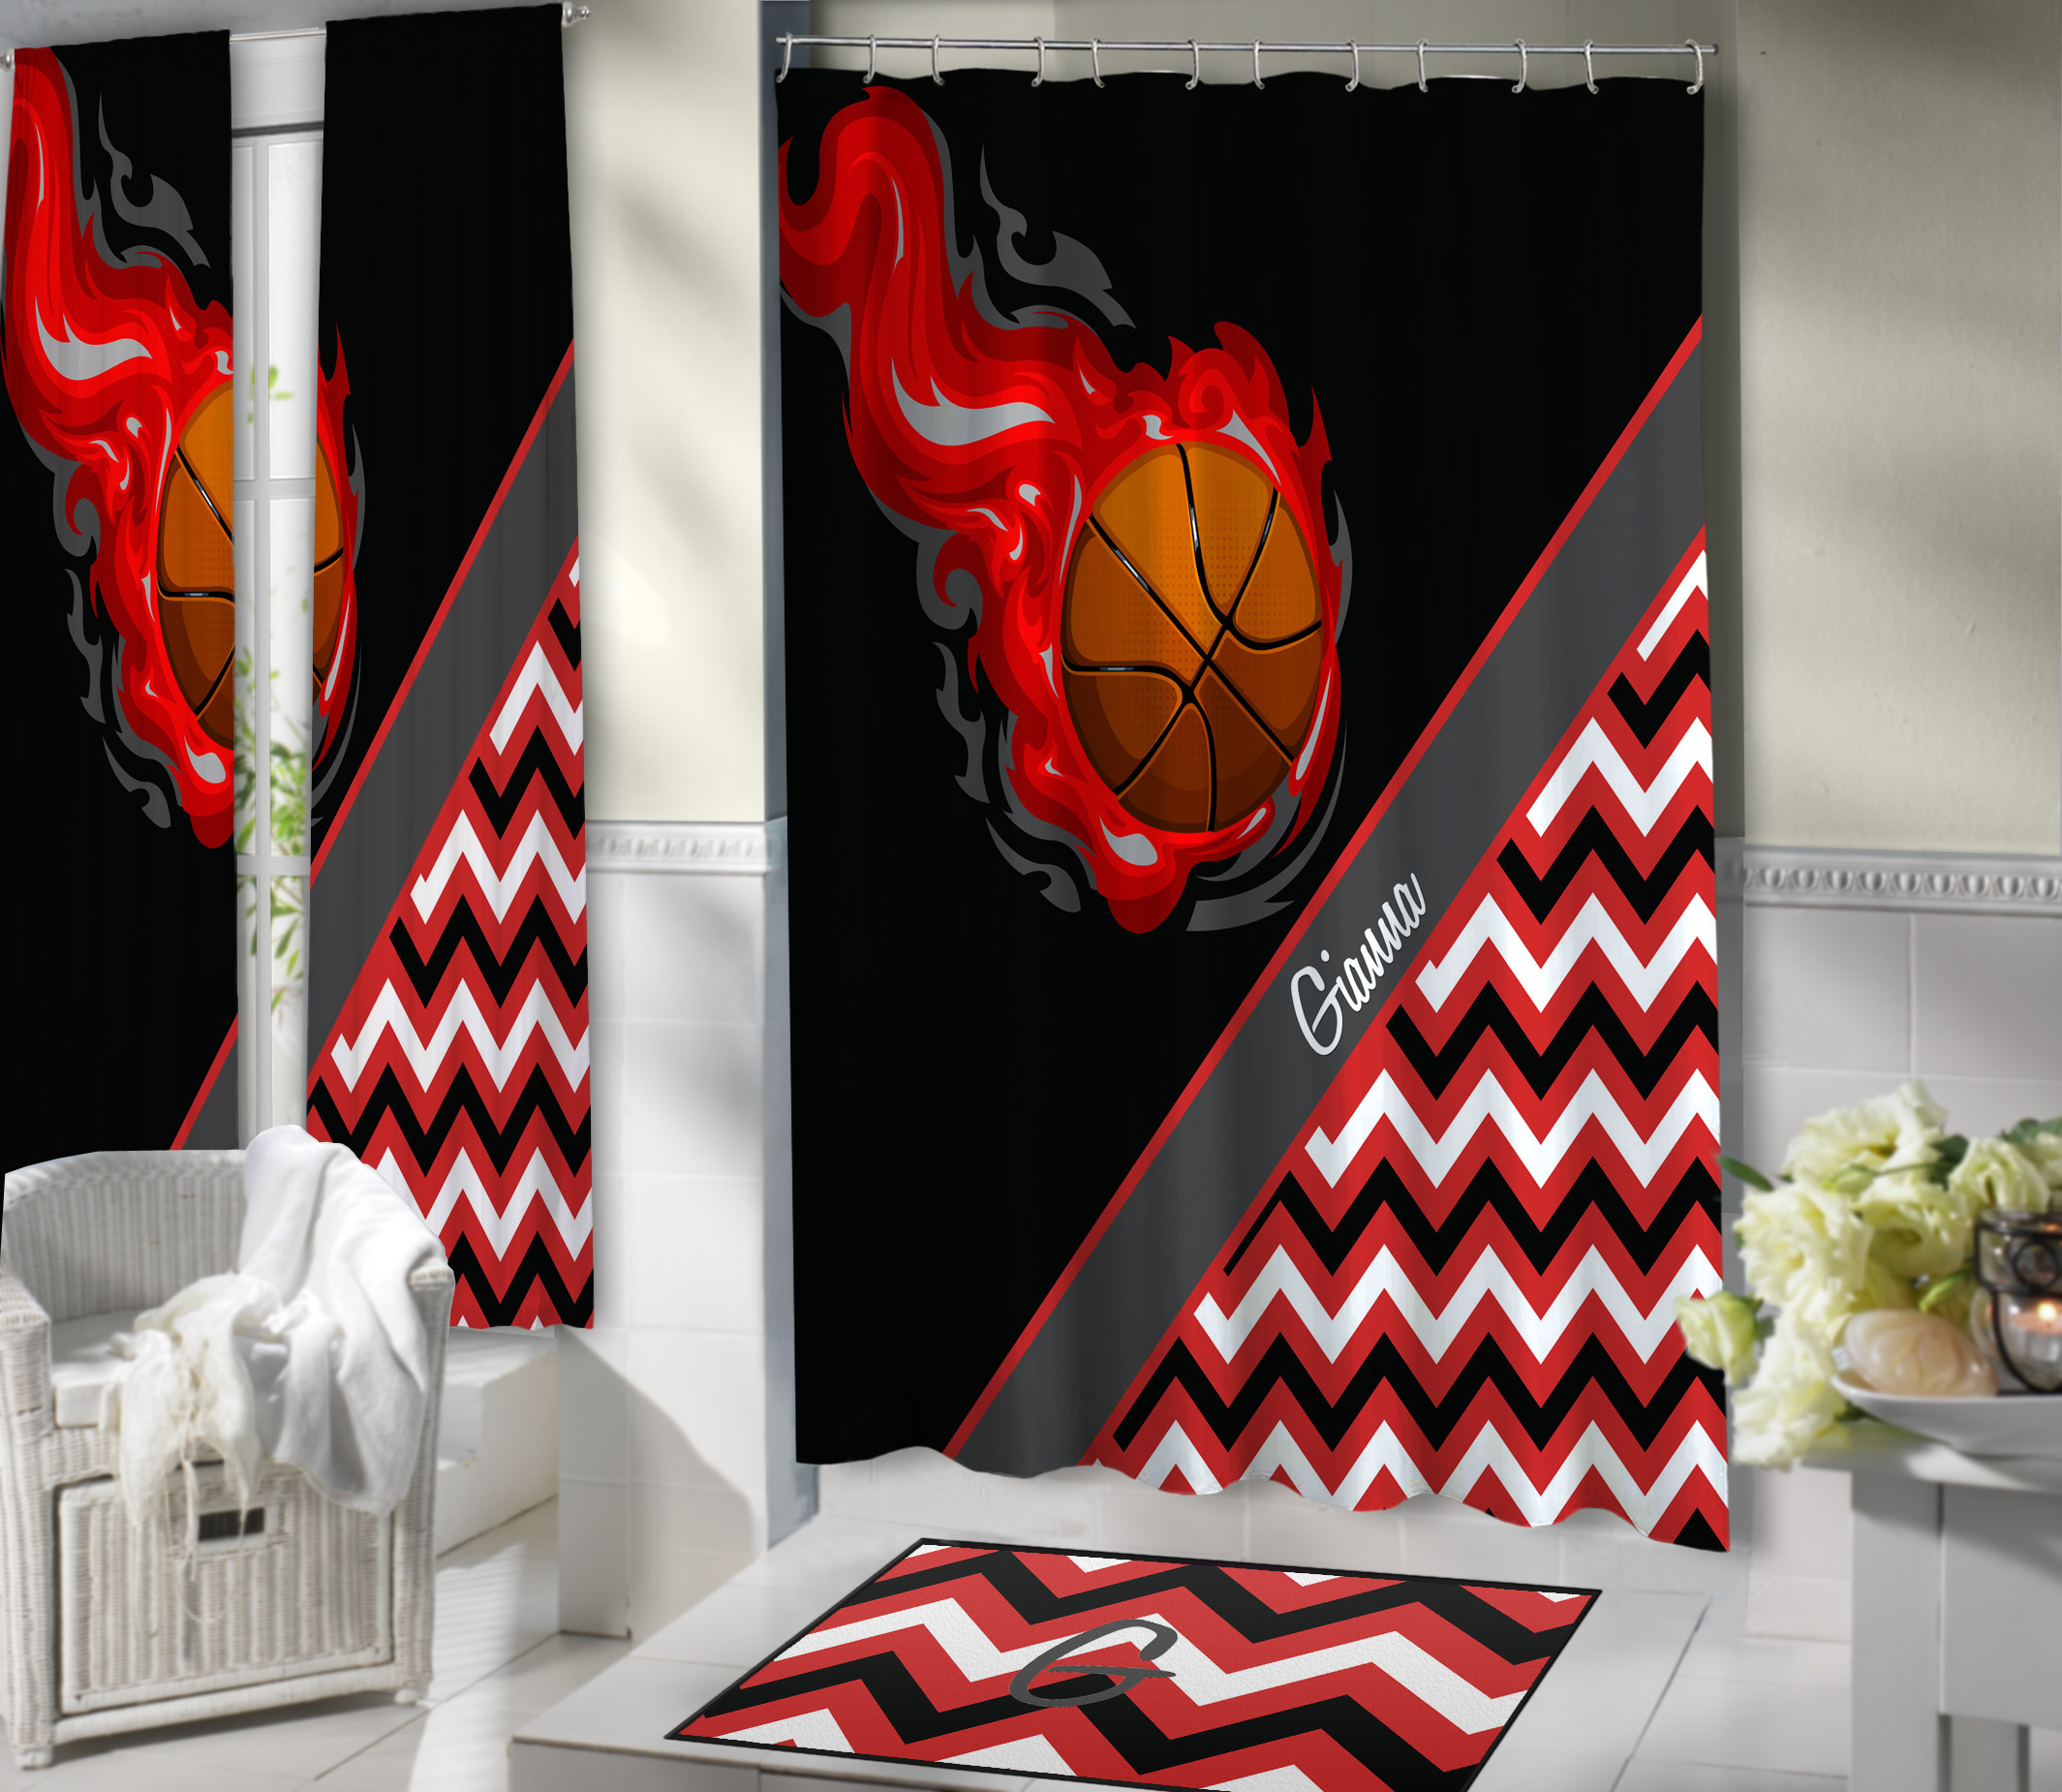 Red And Black Basketball Fabric Shower Curtain For Girls